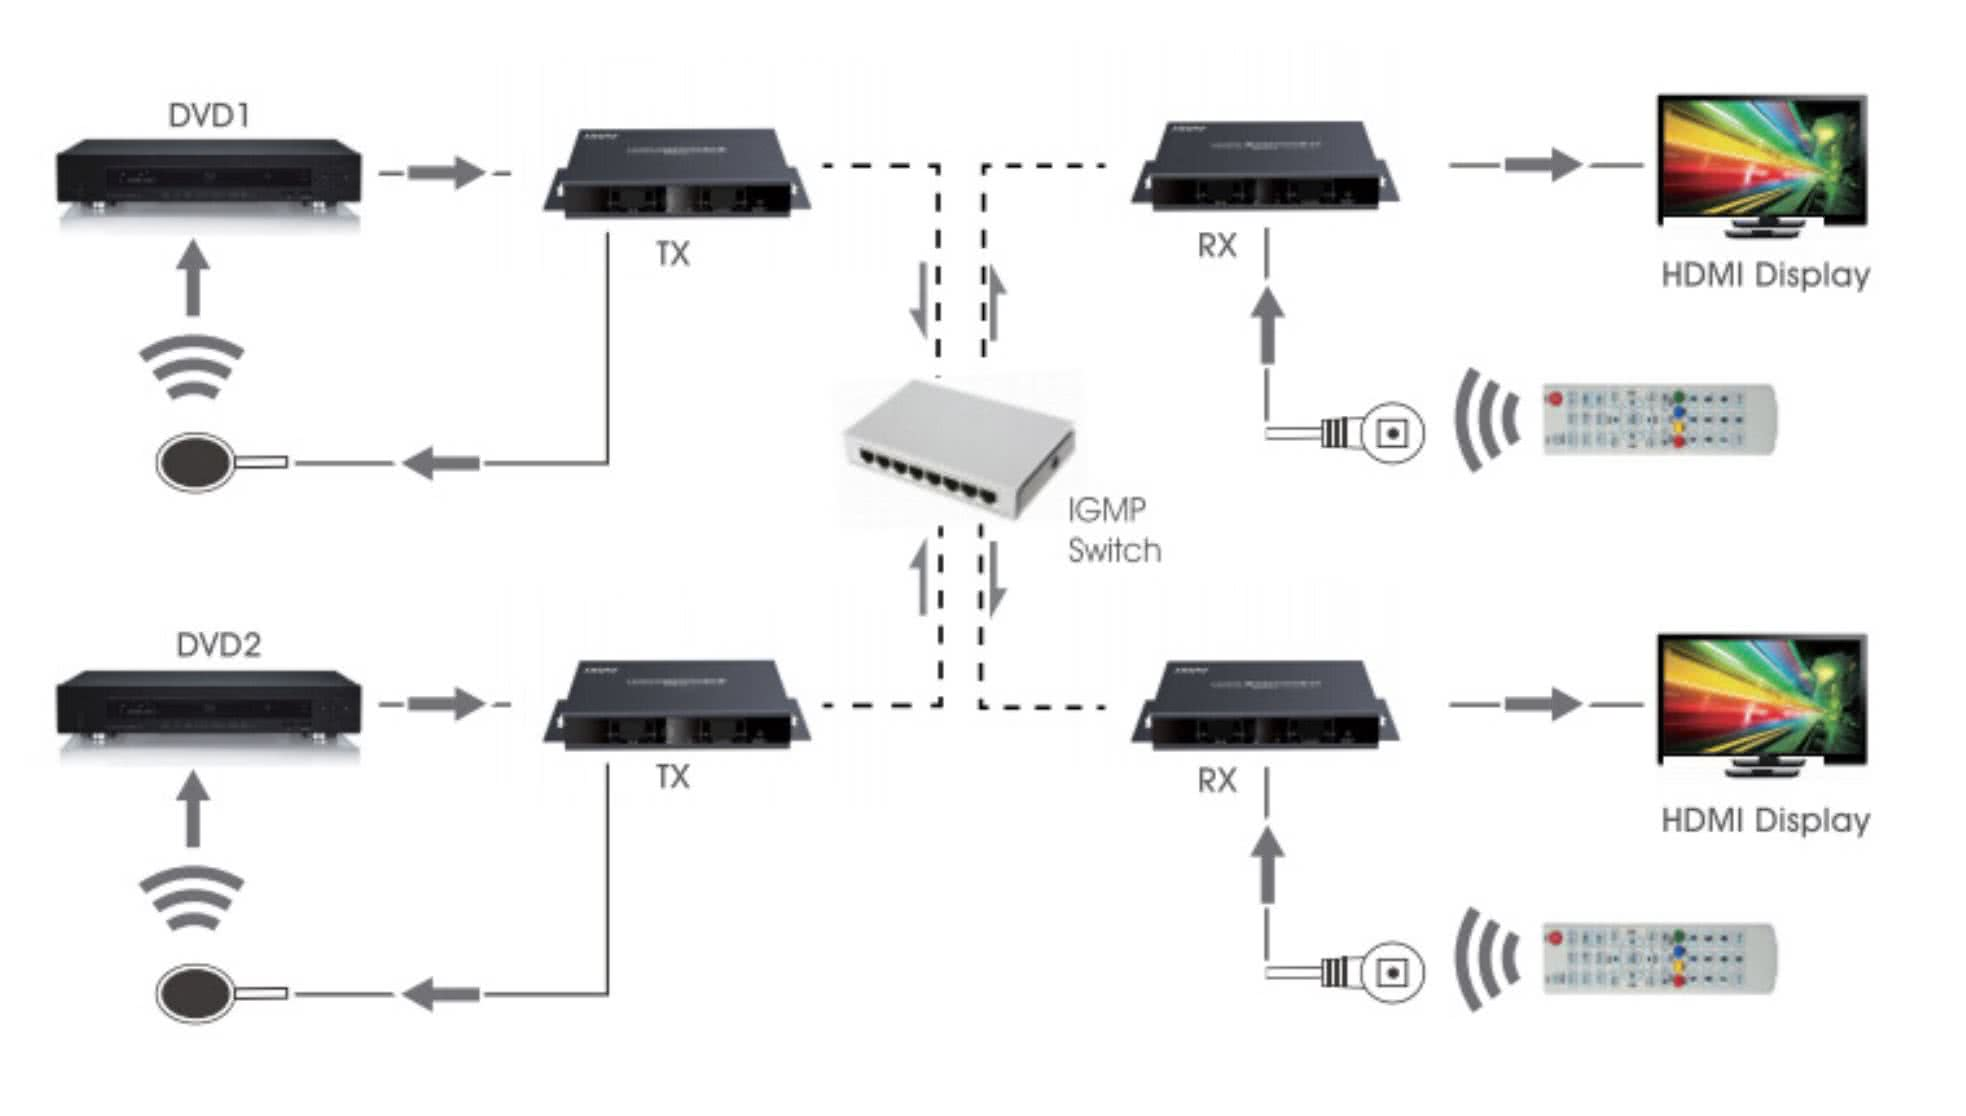 Receiver | HDBiTT Matrix HDMI IP Extender over Network Switches with Infrared | Up to 99 Sources 99xN